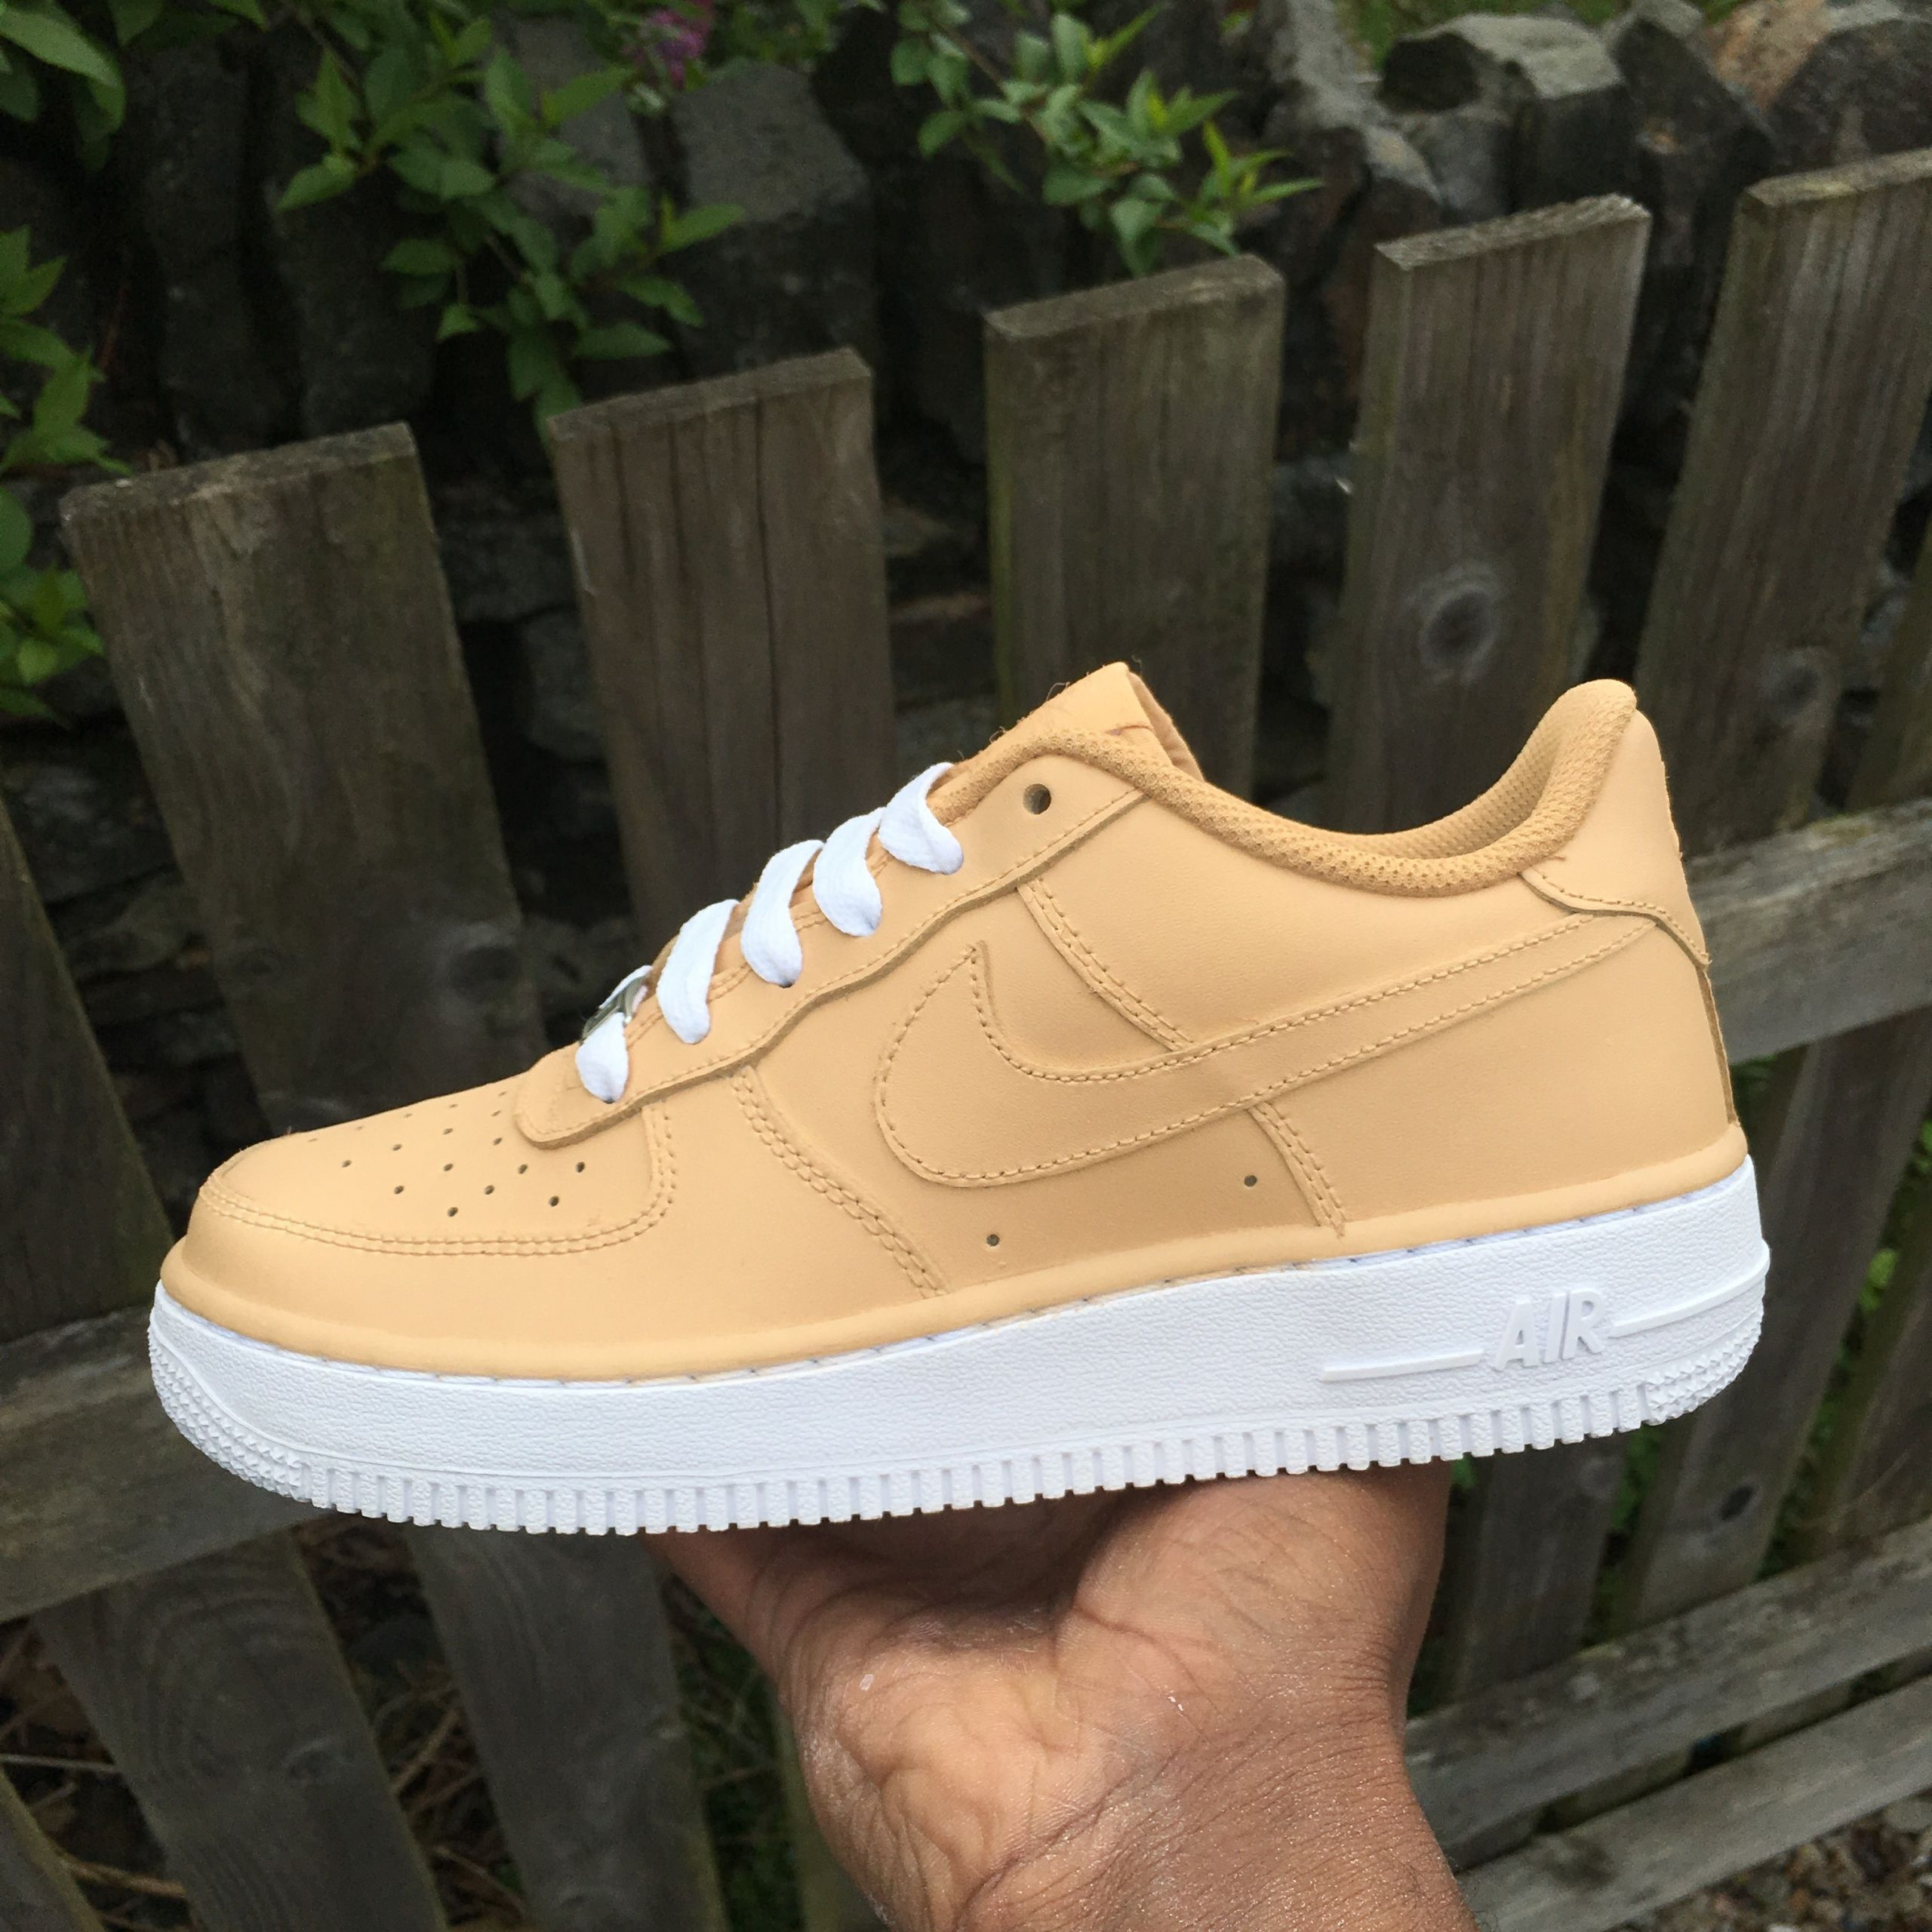 Nike Air Coloré Mesure La Force 1s Ny